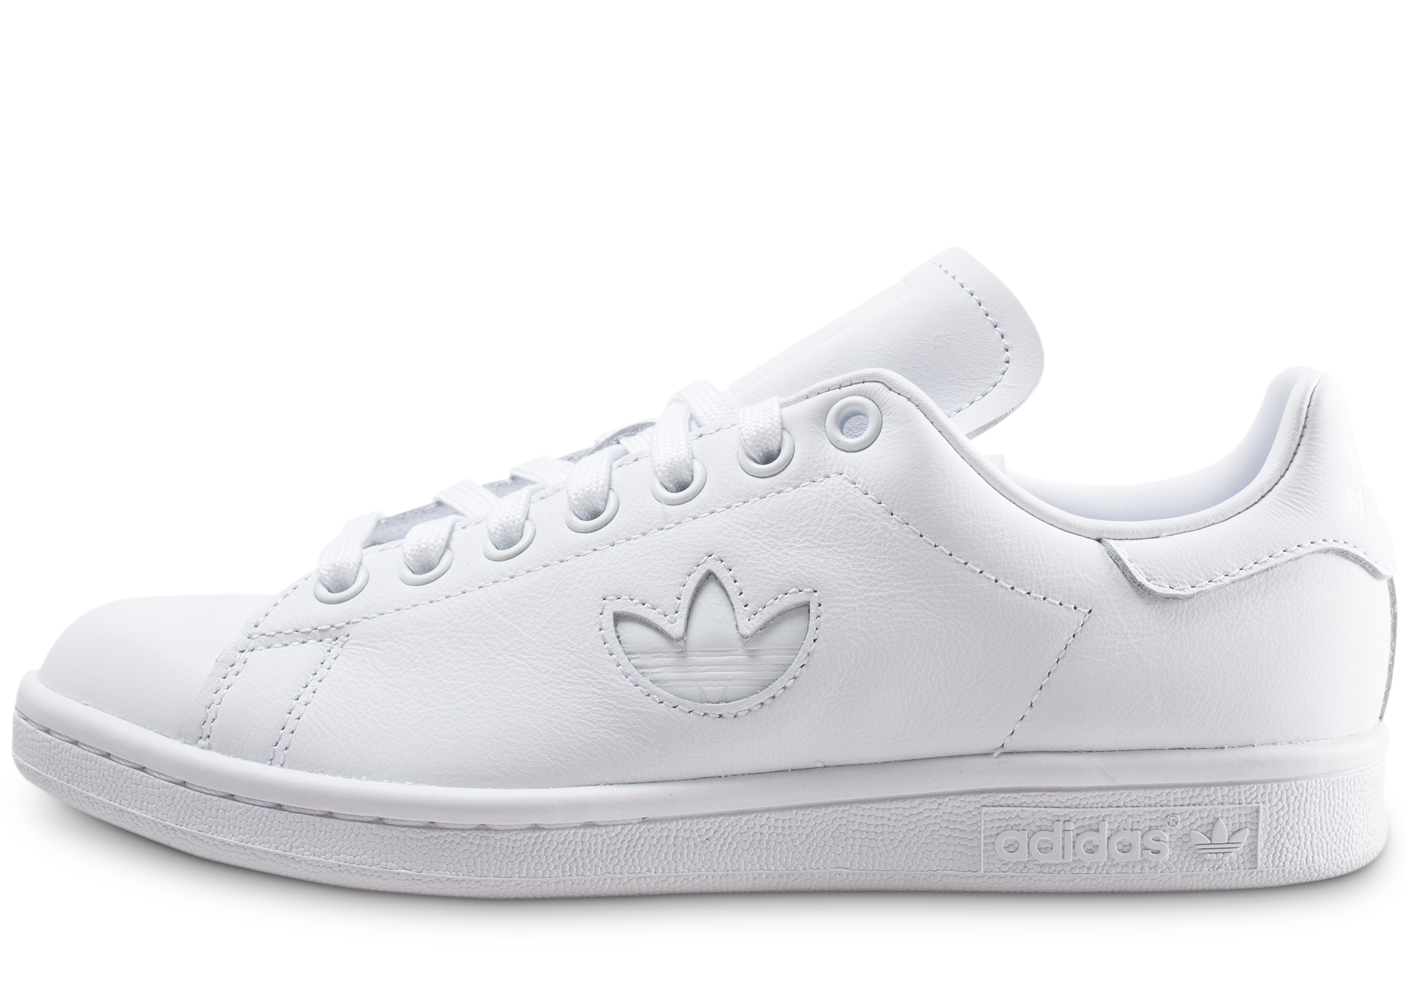 Adidas stan smith trèfle triple blanc femme...